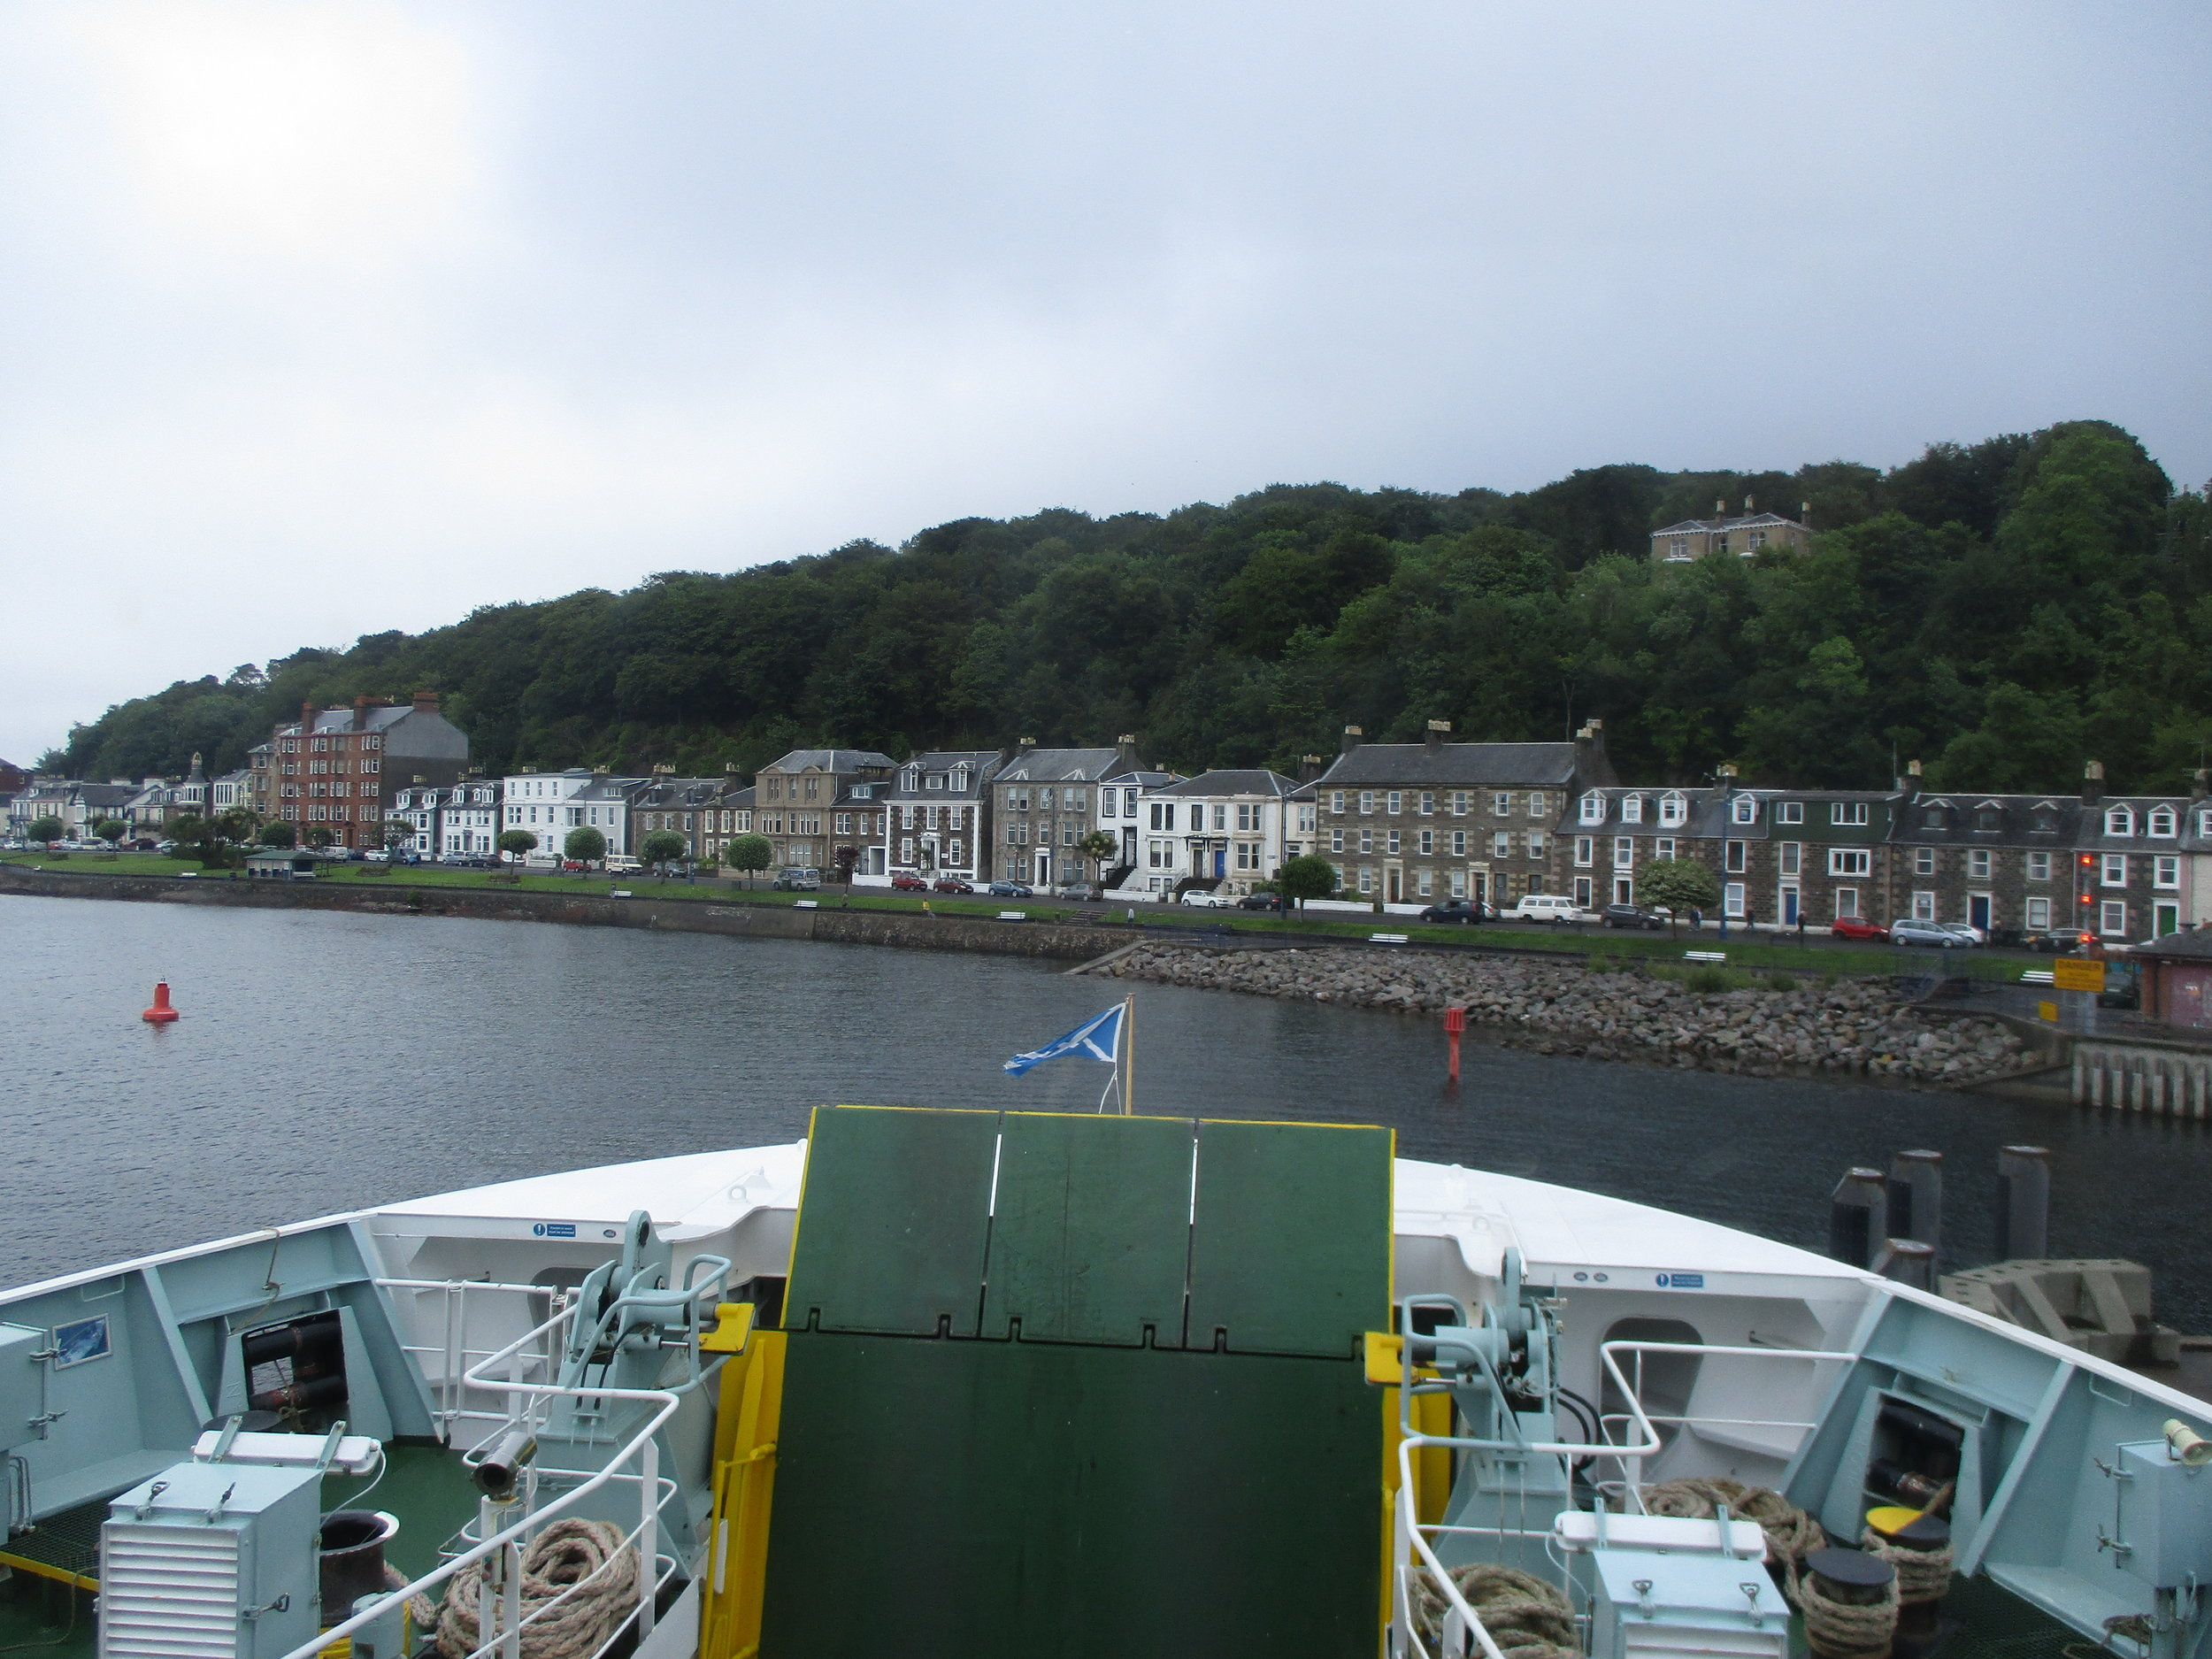 Leaving the Isle of Bute on the ferry.